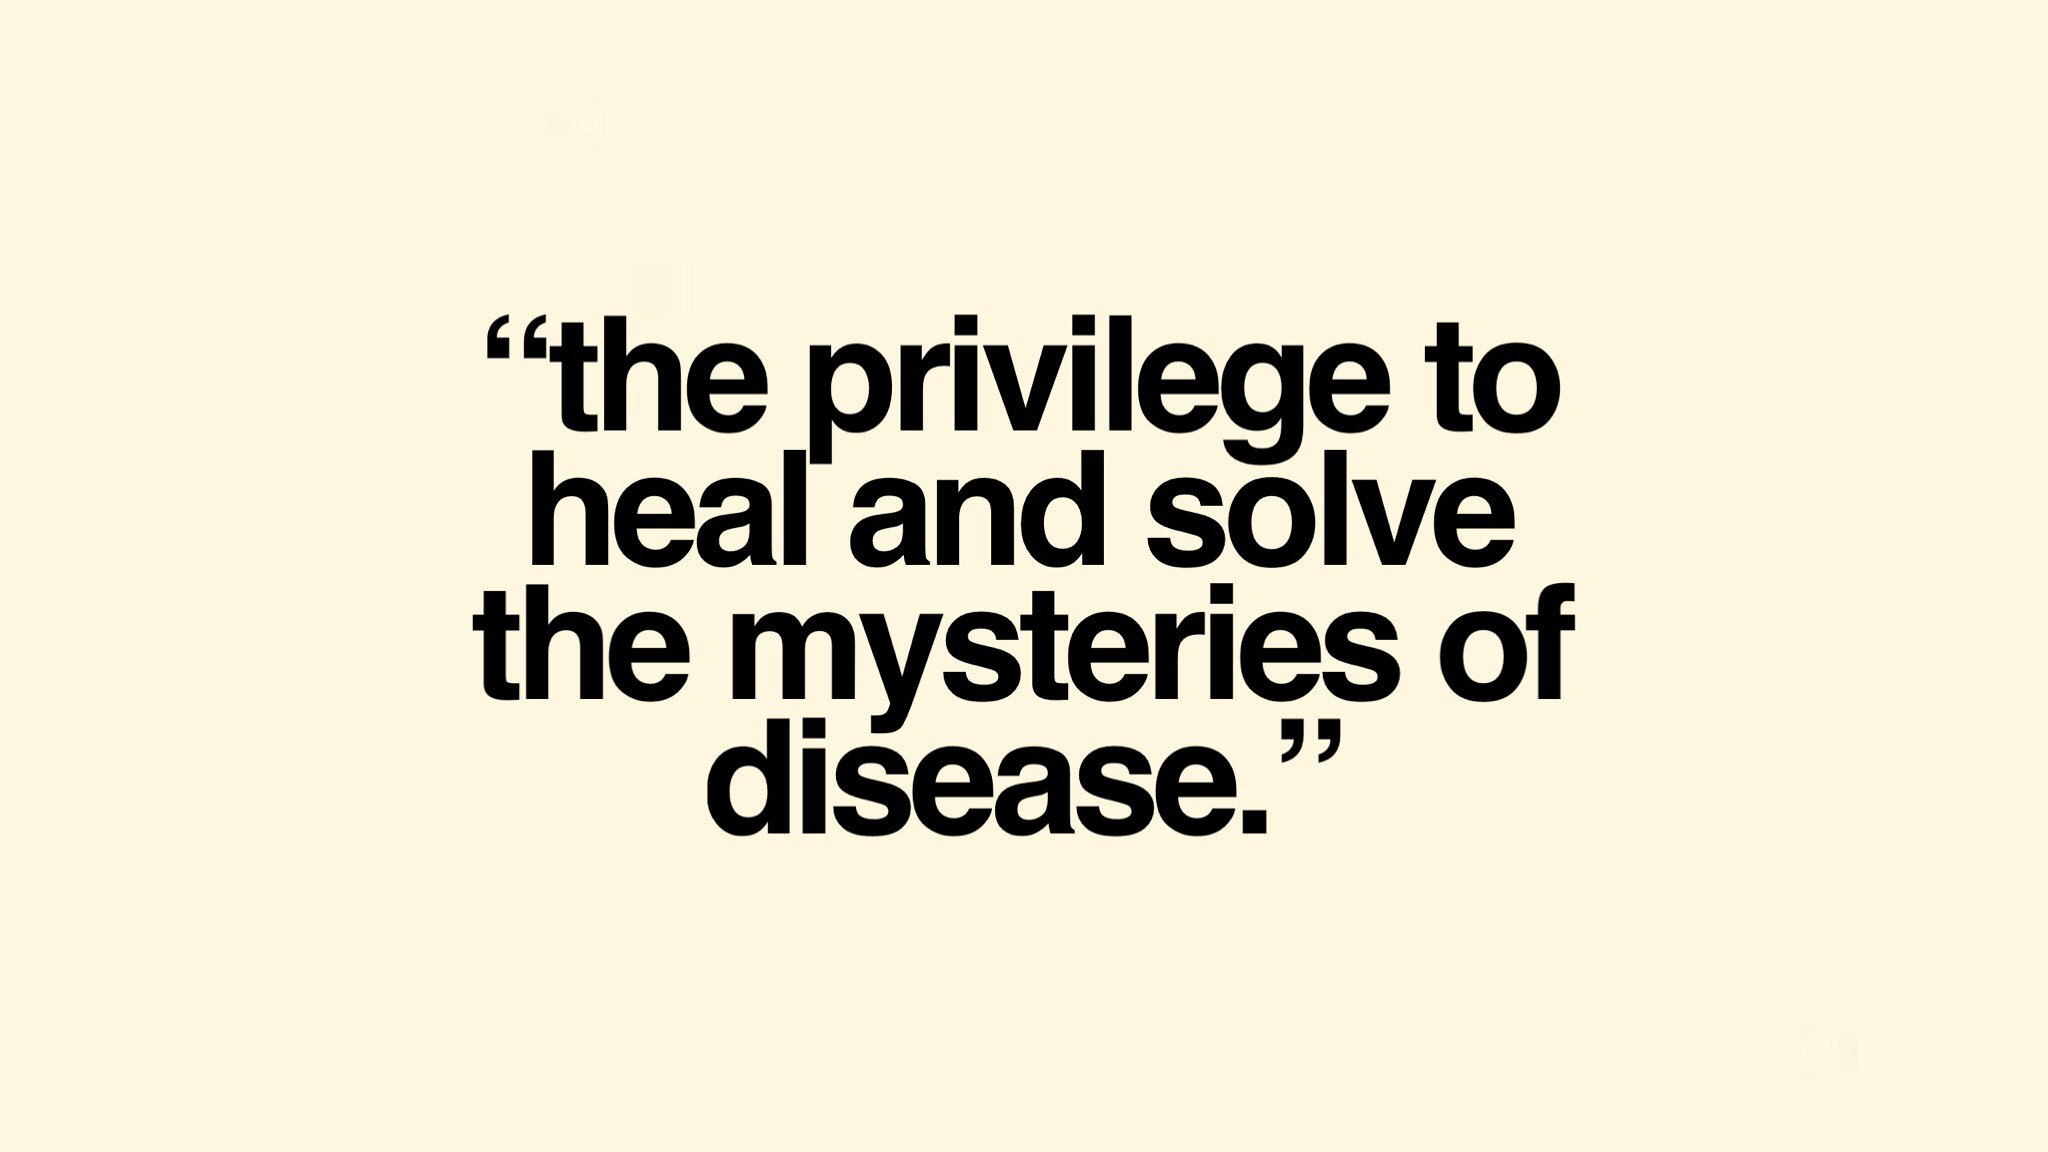 The privilege to heal and solve the mysteries of disease.